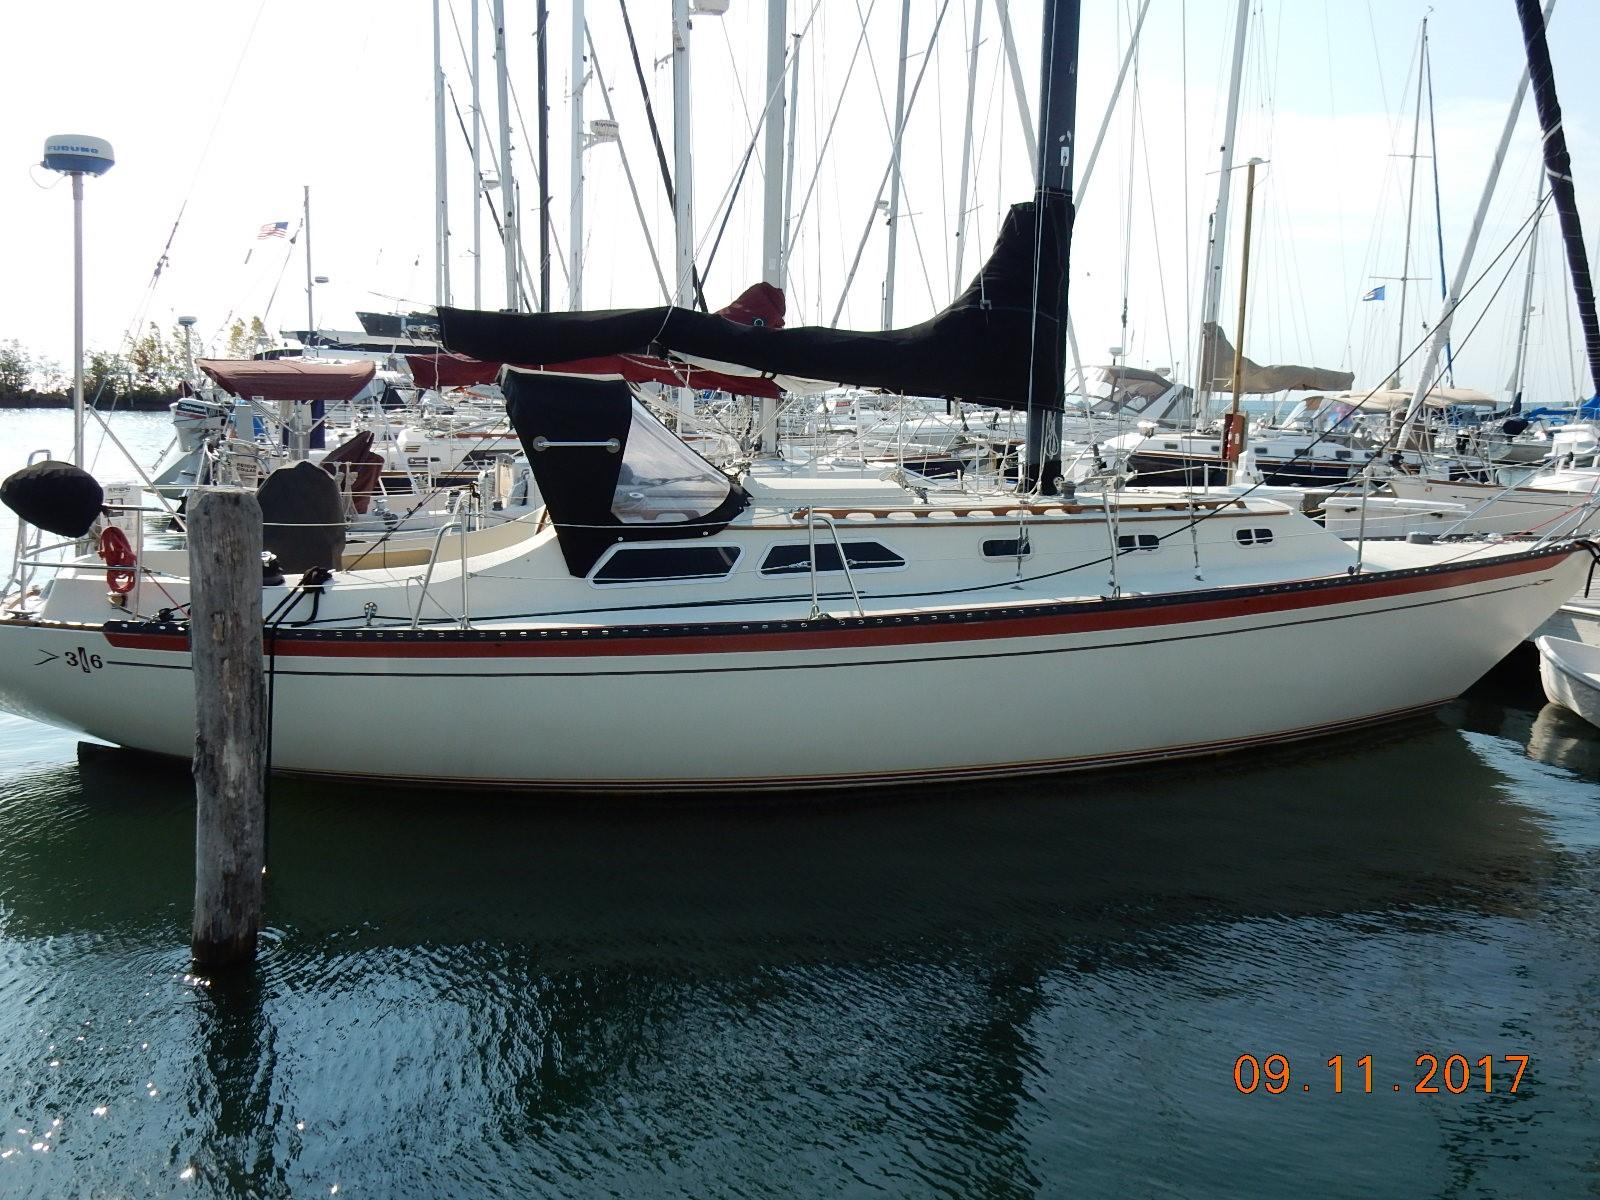 1978 Islander 36 Vela Barca in vendita - www.yachtworld.it